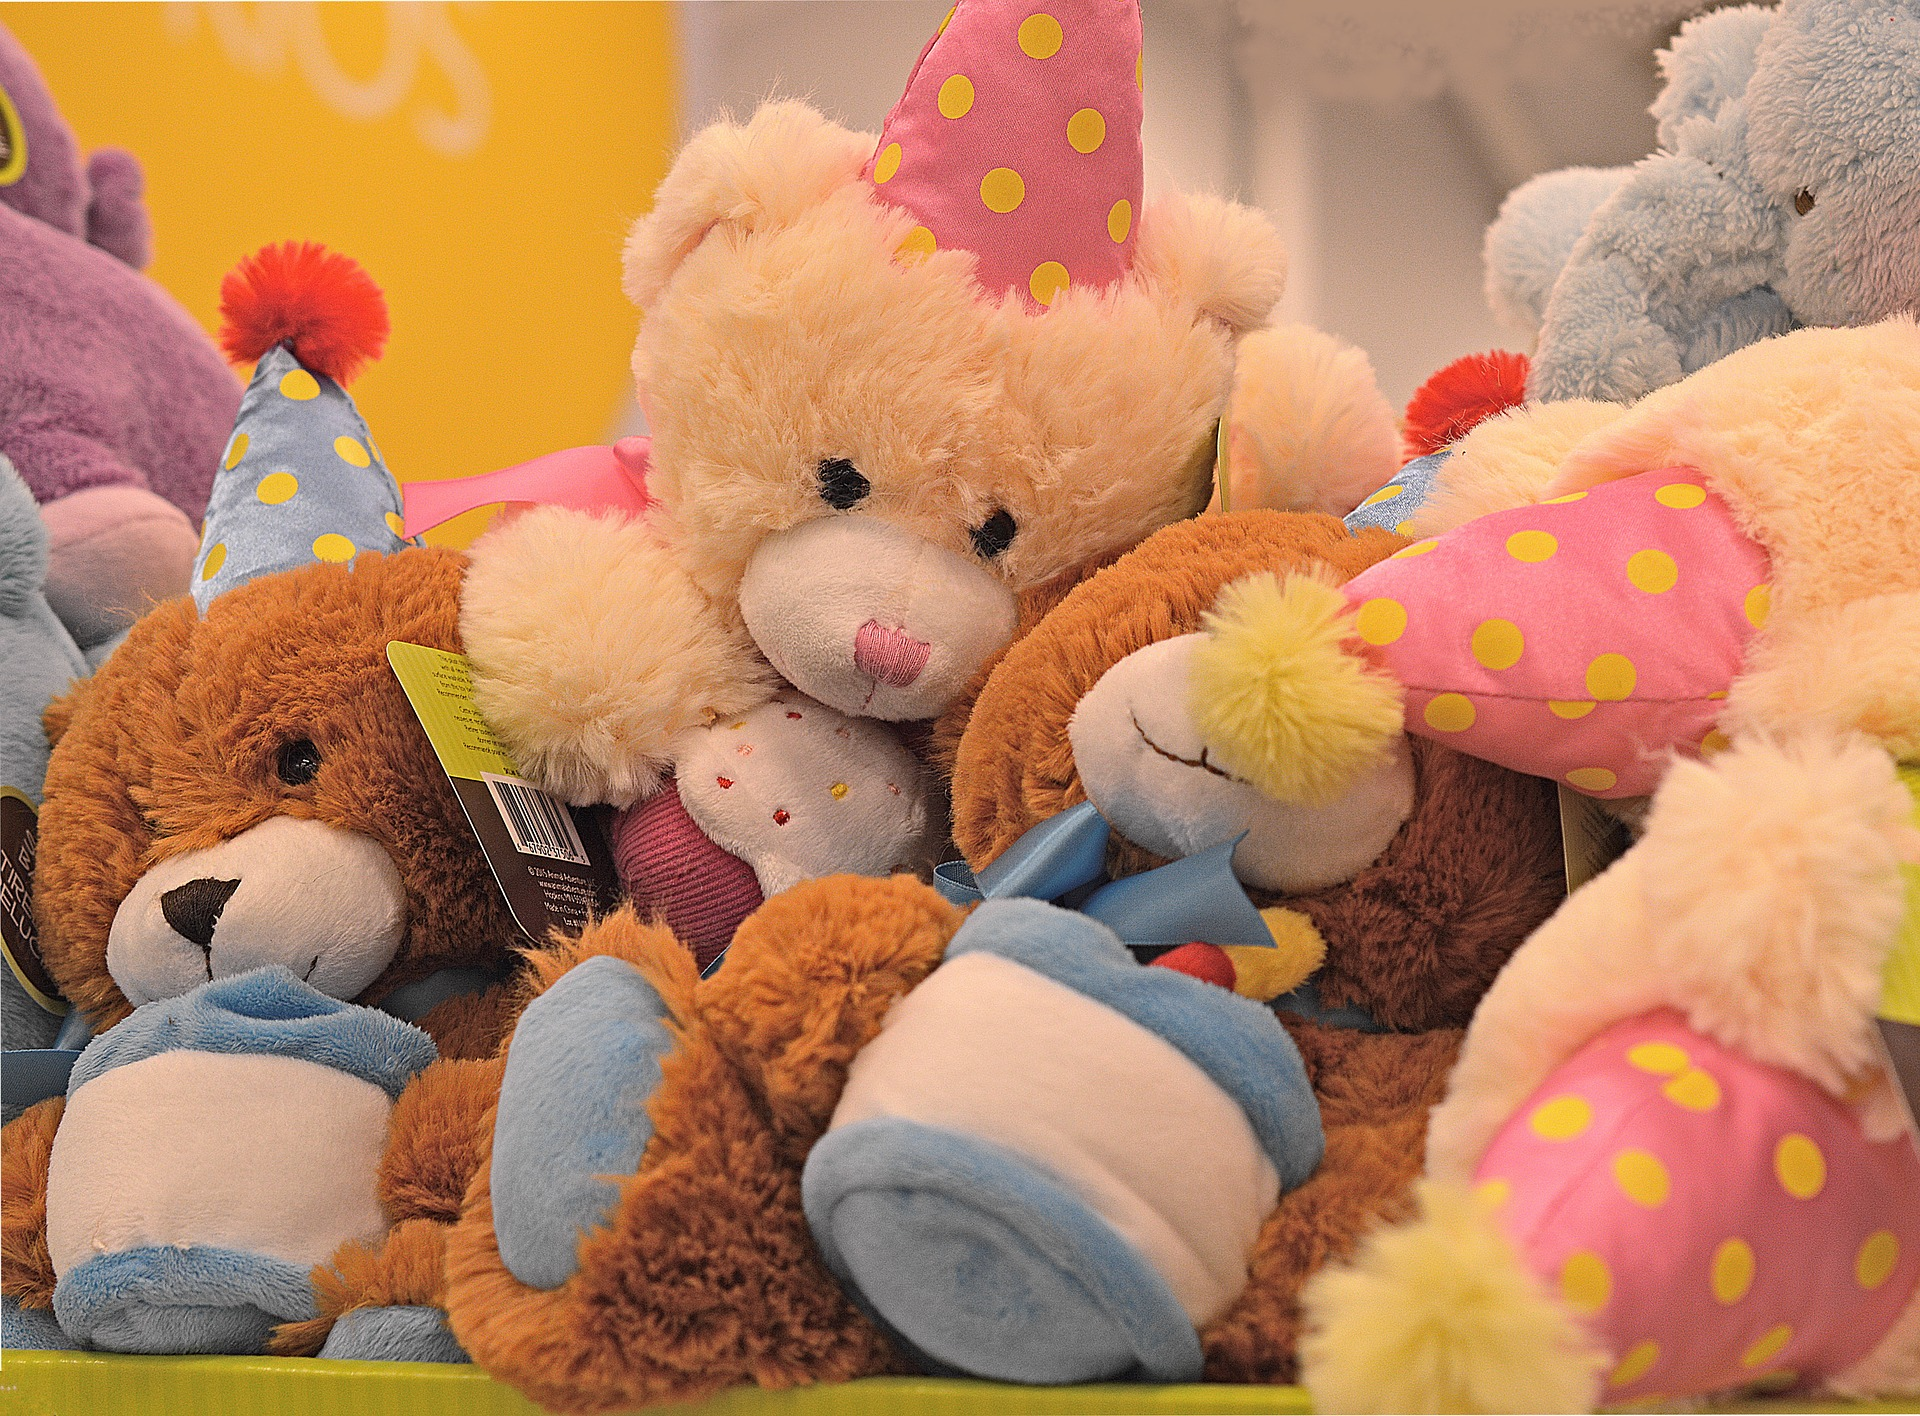 stuffed-animals-1818223_1920